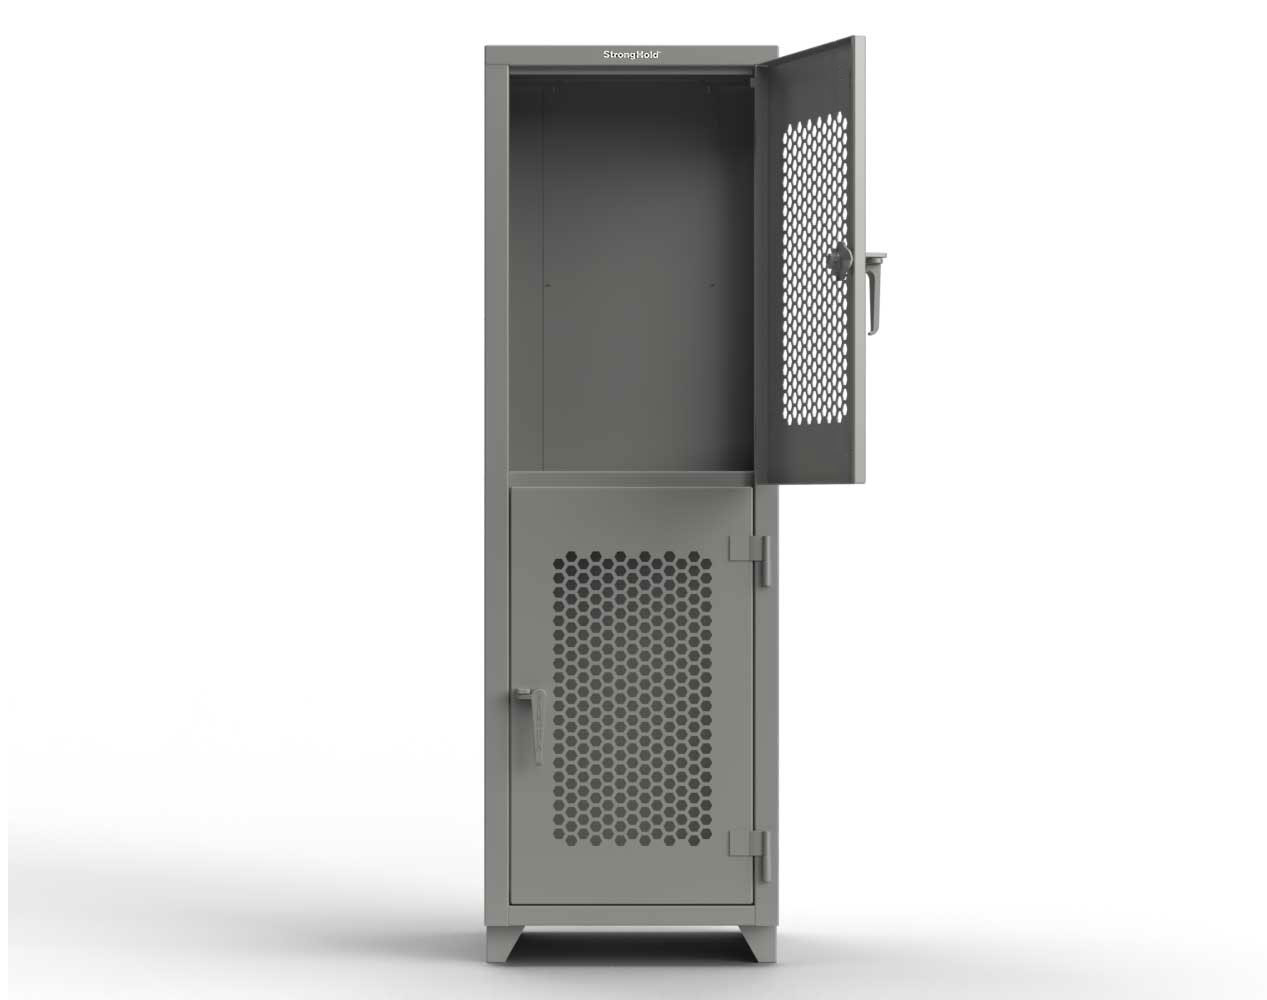 Extra Heavy Duty 14 GA Double-Tier Ventilated Locker, 2 Compartments – 24 in. W x 24 in. D x 75 in. H